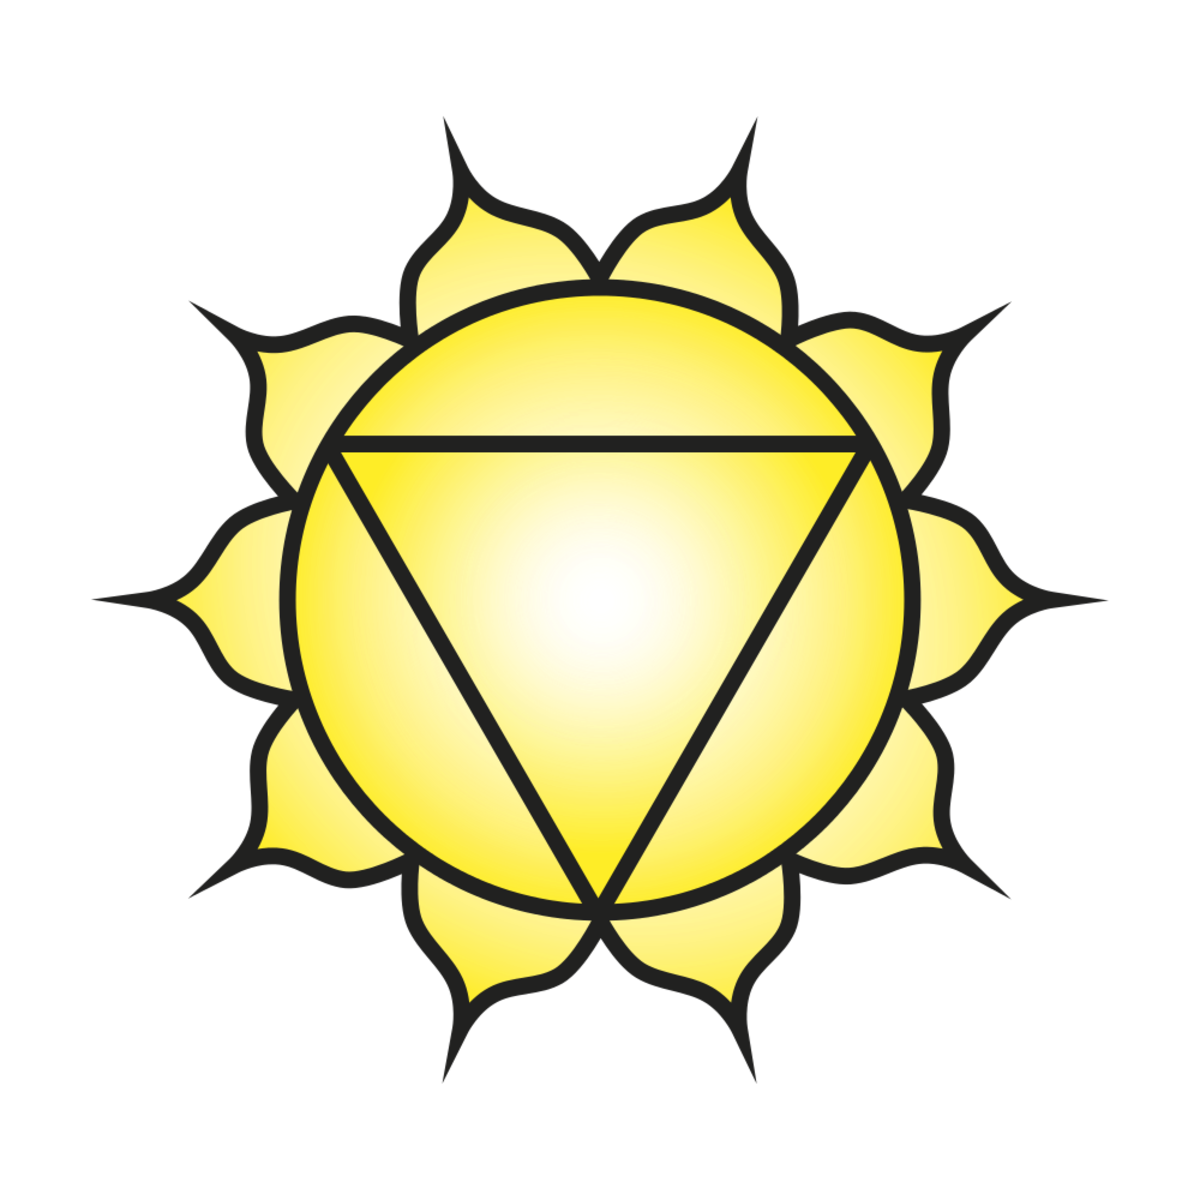 Solar Plexus Chakra and Your Dreams